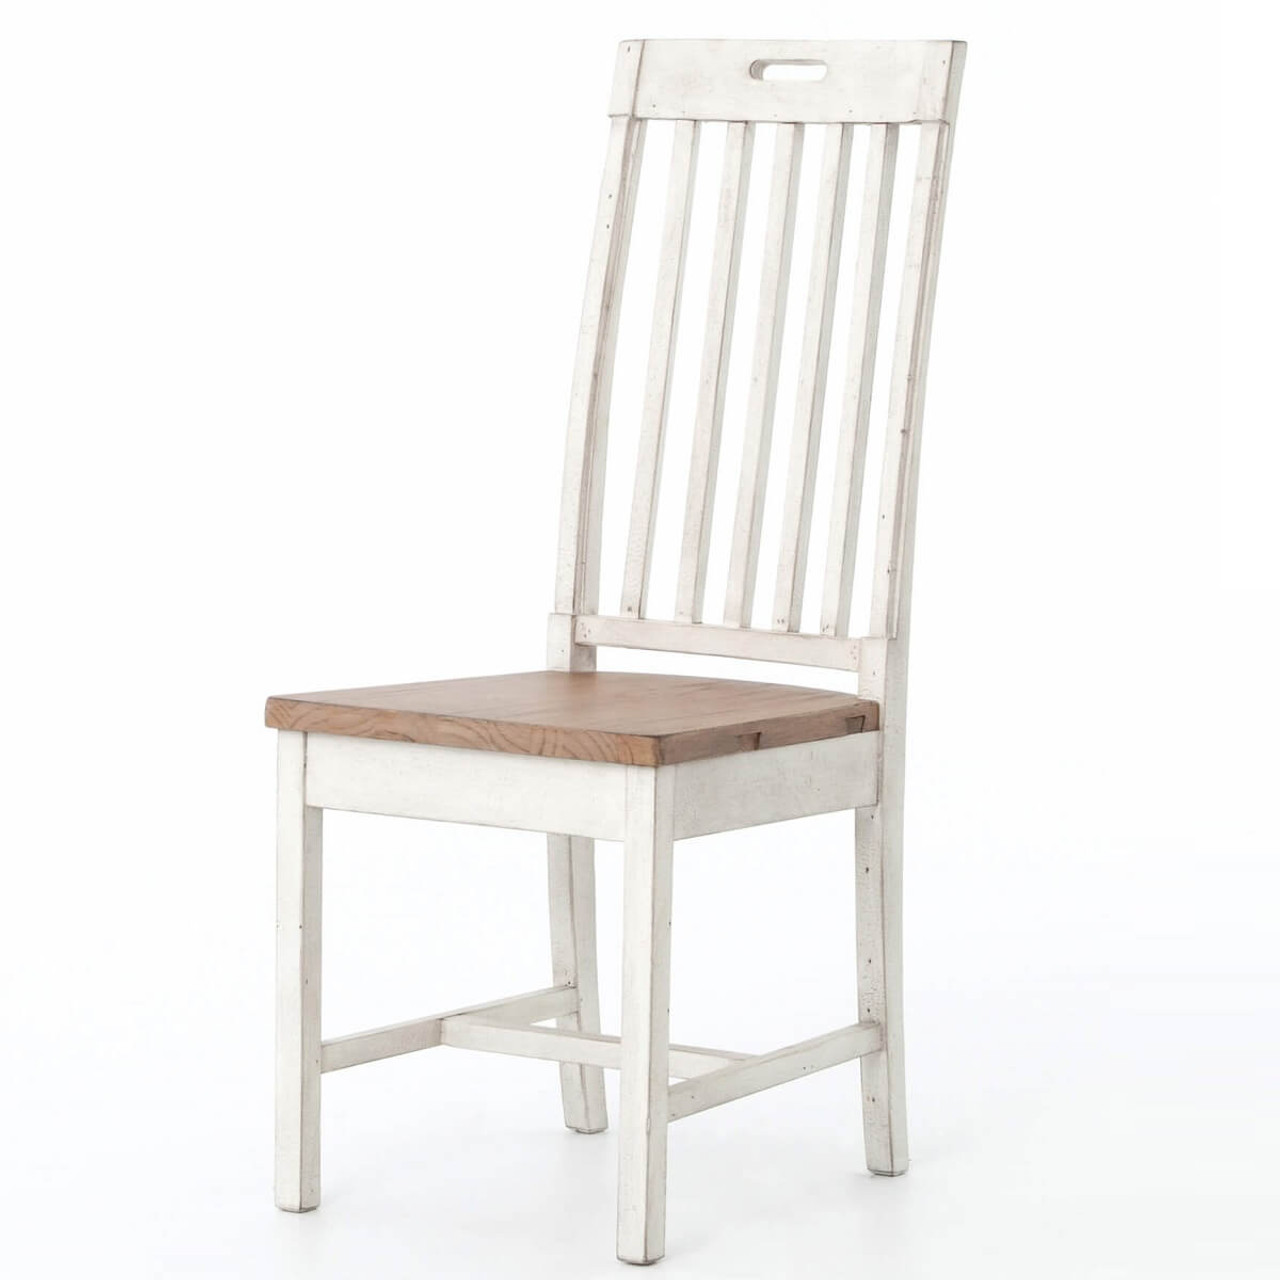 Cintra rustic wood white dining room chair zin home for White wood dining room chairs